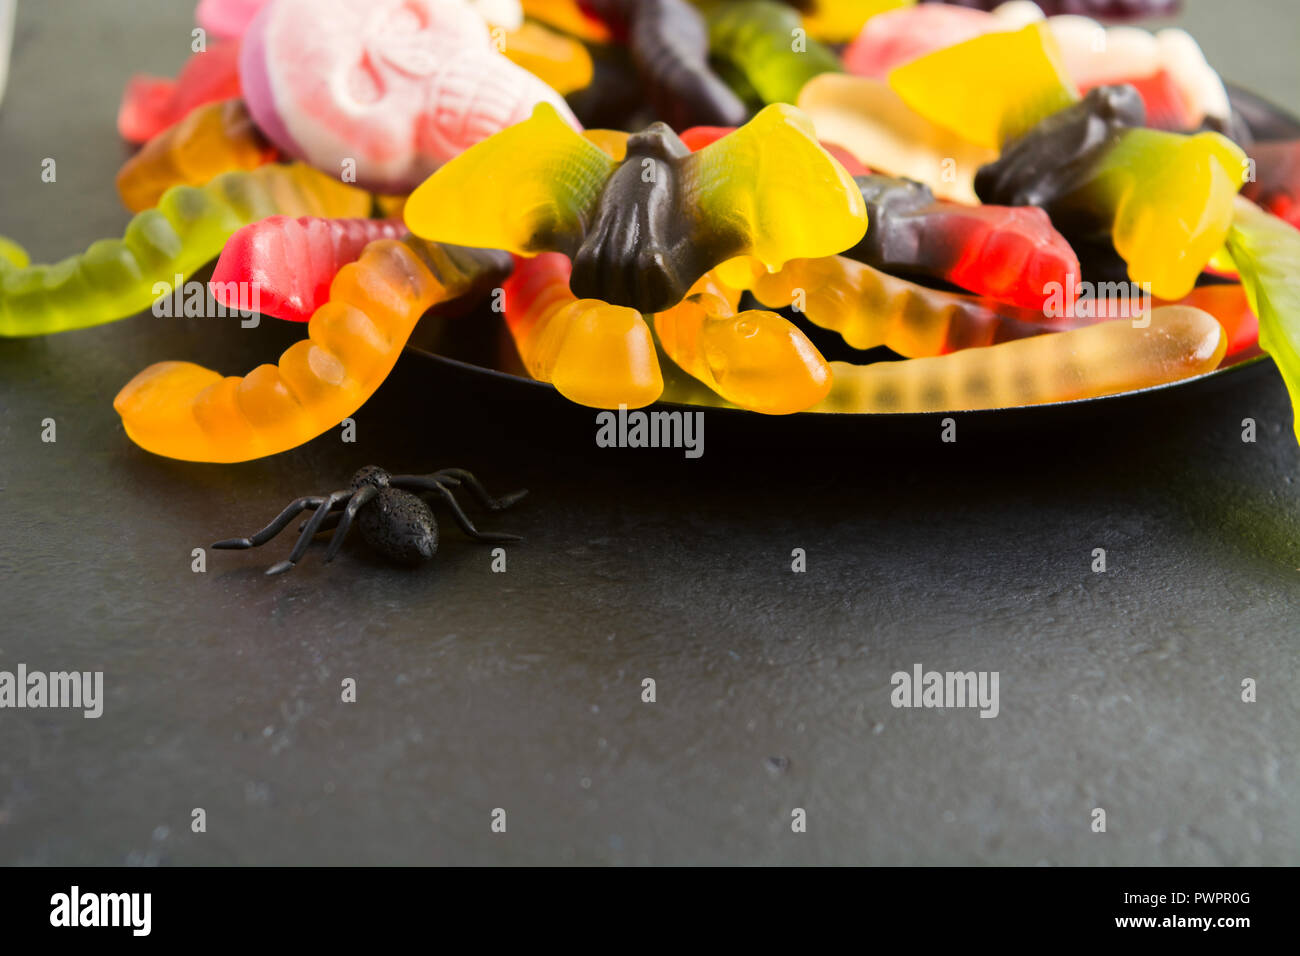 Plate of various Halloween candies and spider on black backgroundwith copy space - Stock Image